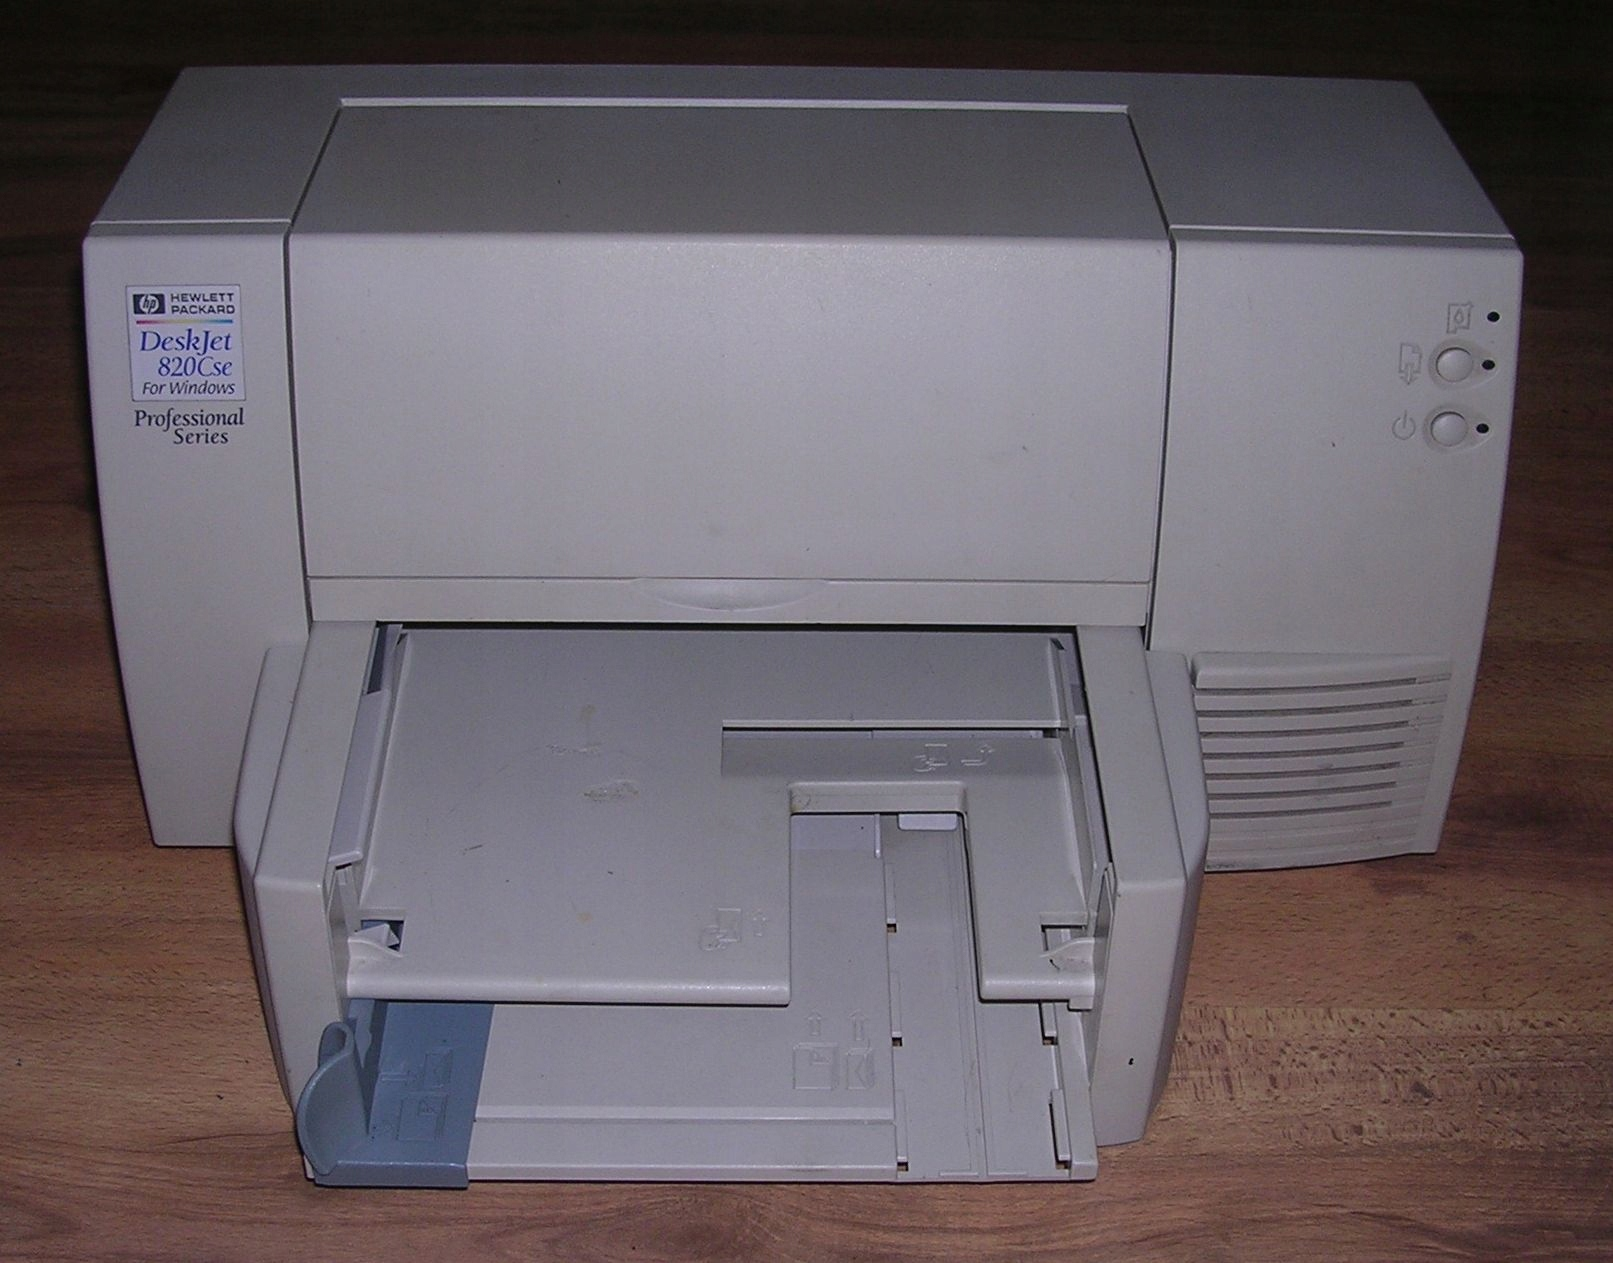 HEWLETT PACKARD DESKJET 820CSE WINDOWS 8.1 DRIVER